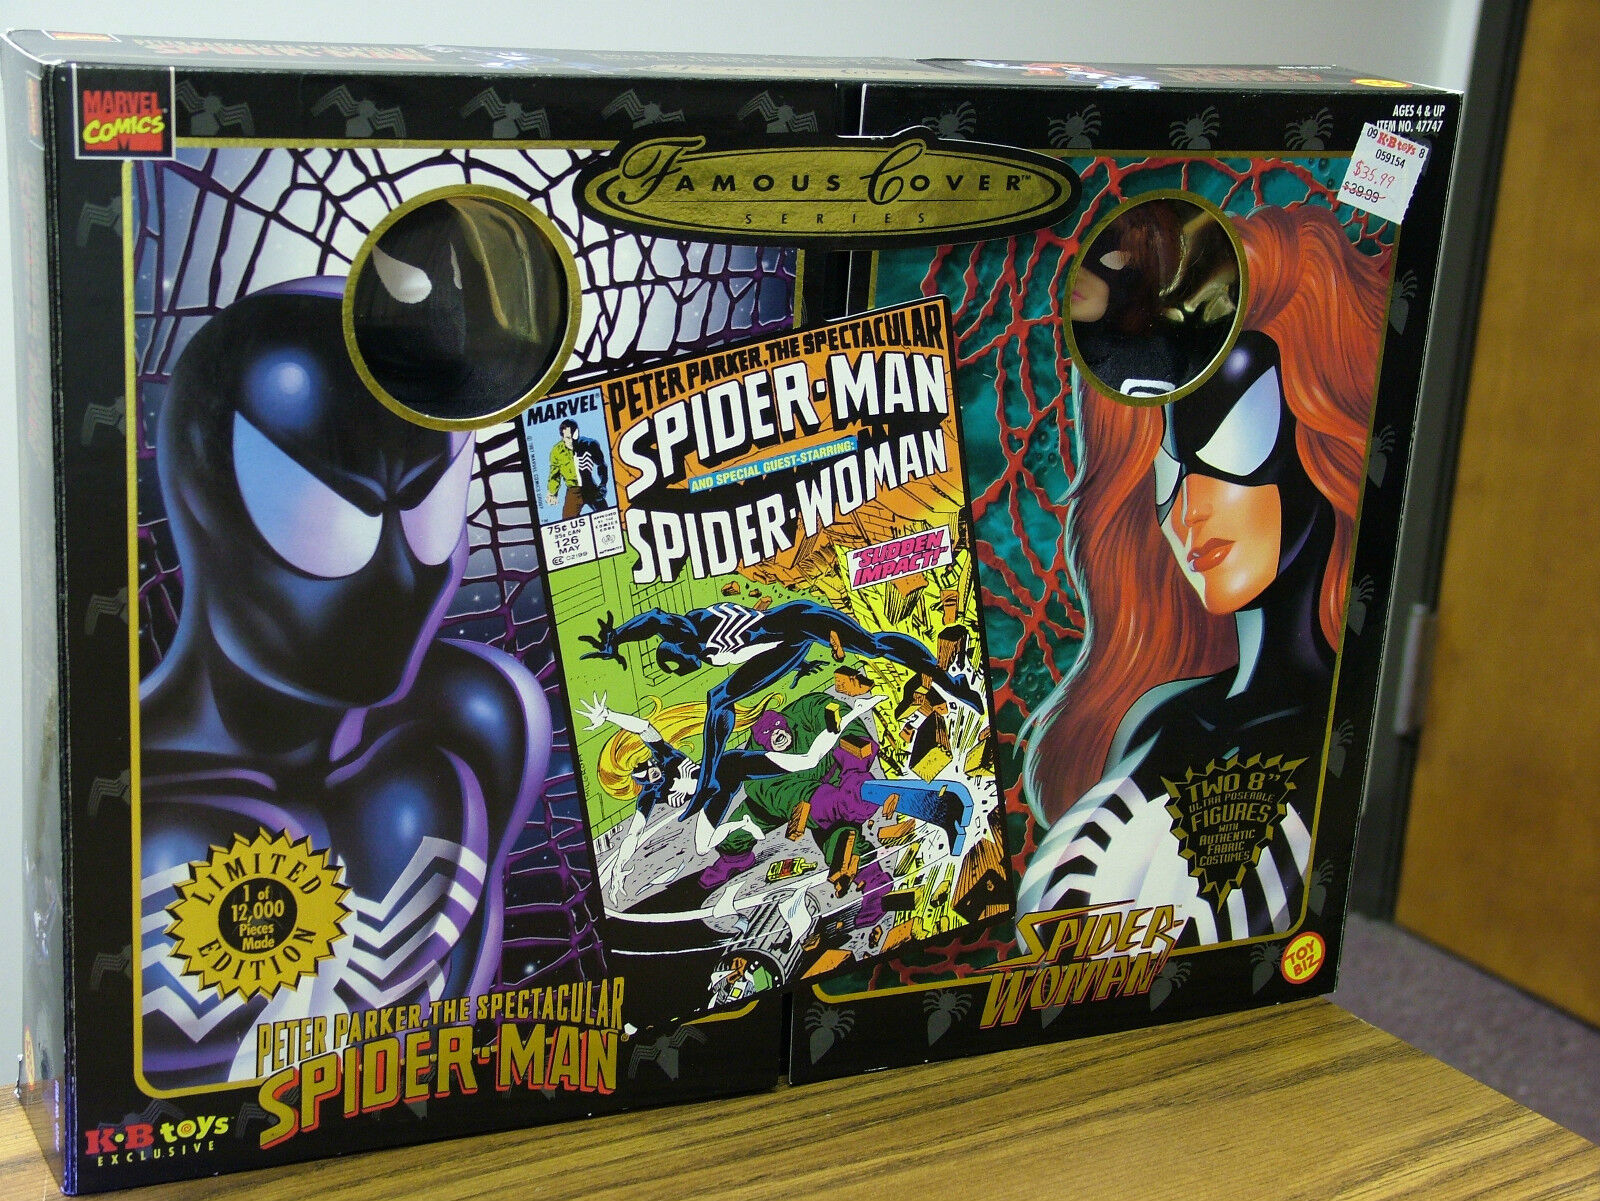 Famous Cover - Spider-Man and Spider-Woman --  Limited Edition  1998